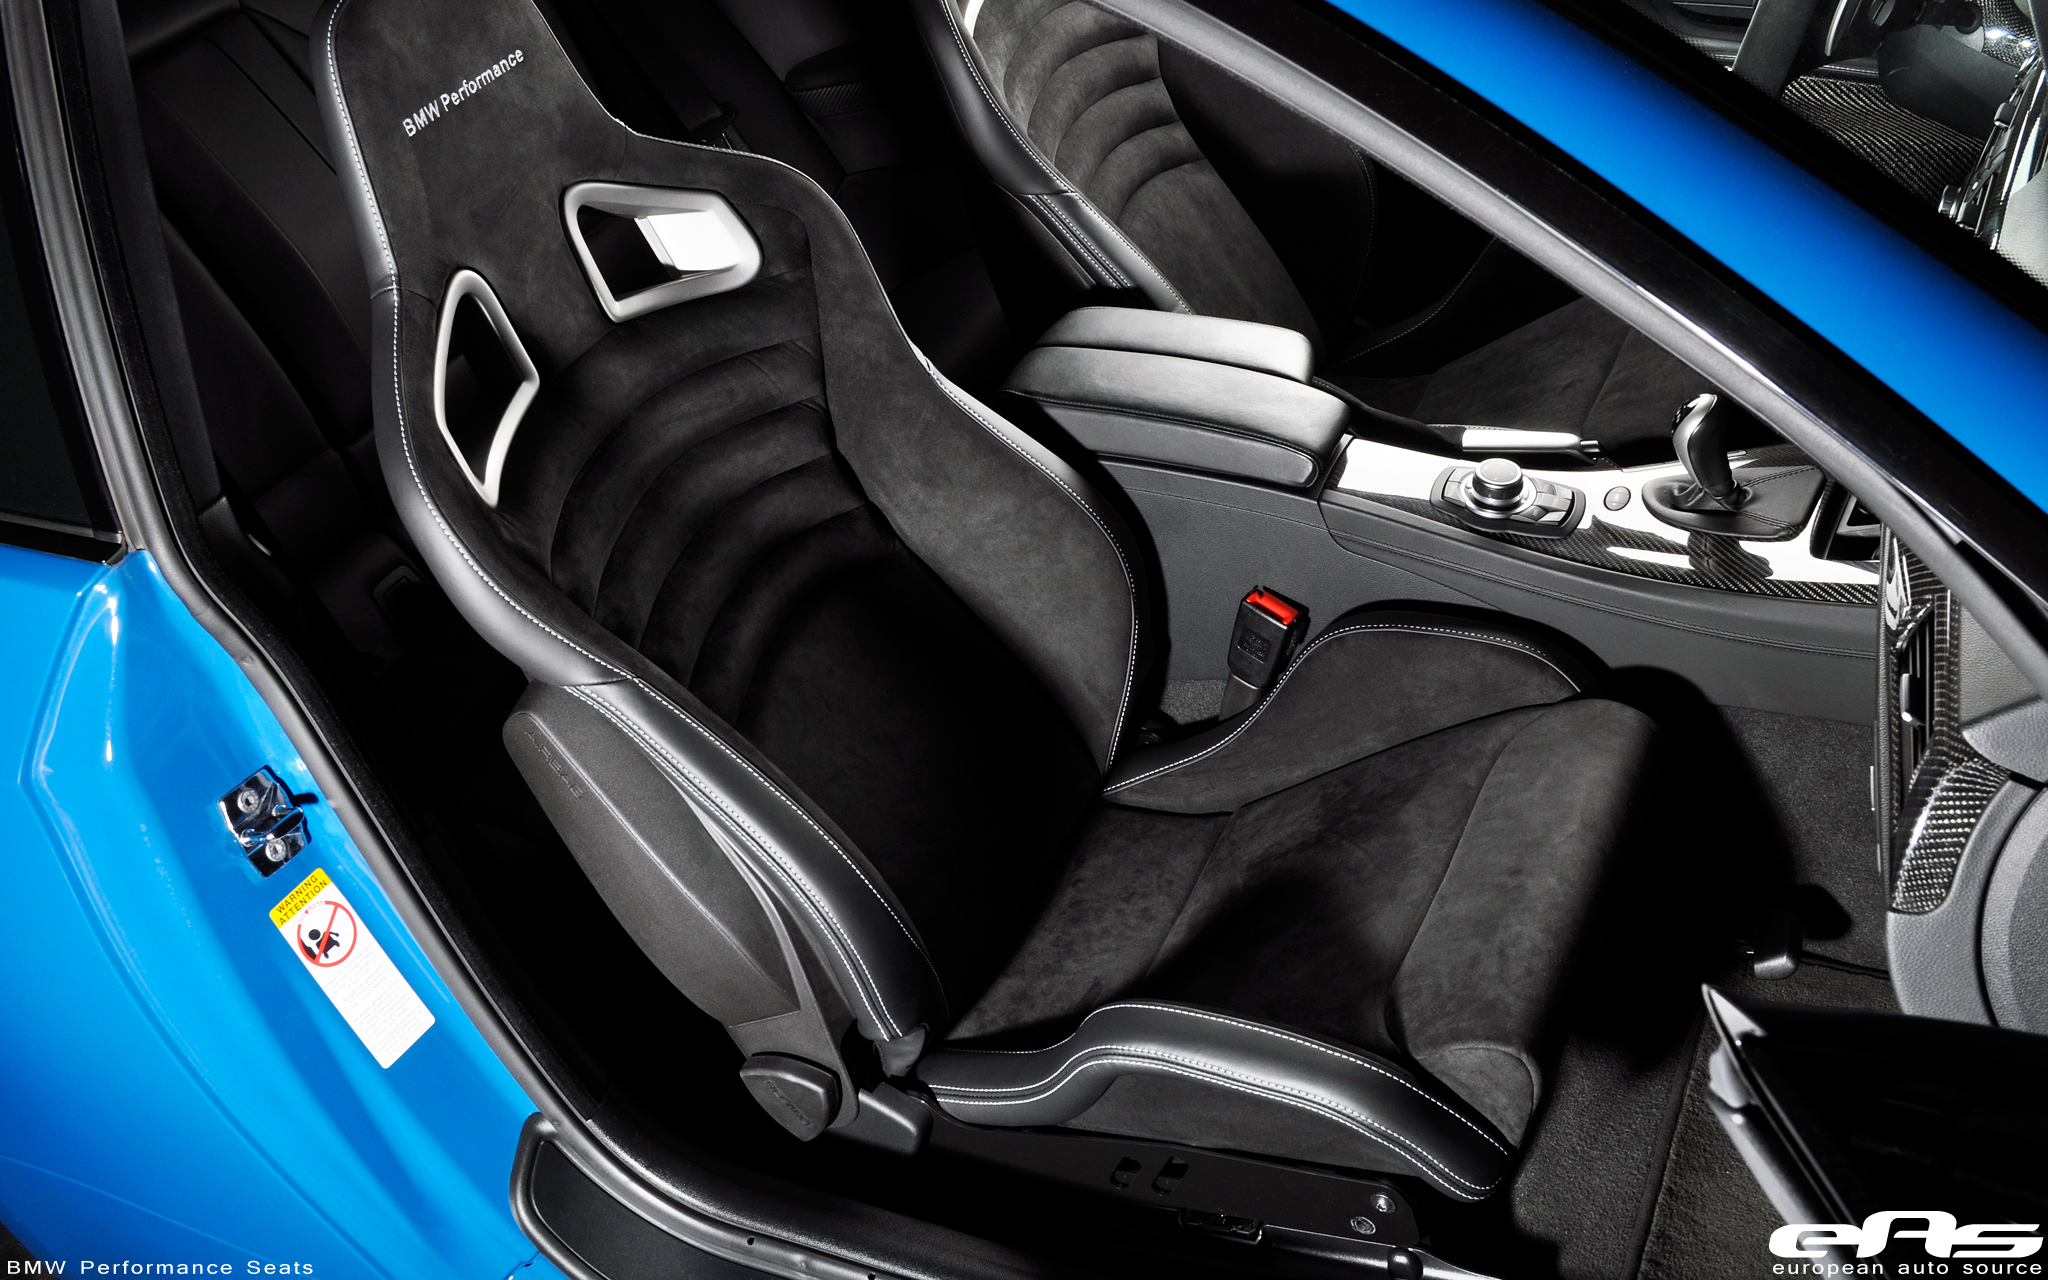 BMW Performance Seats Laguna Seca Blue E92 M3 by eas